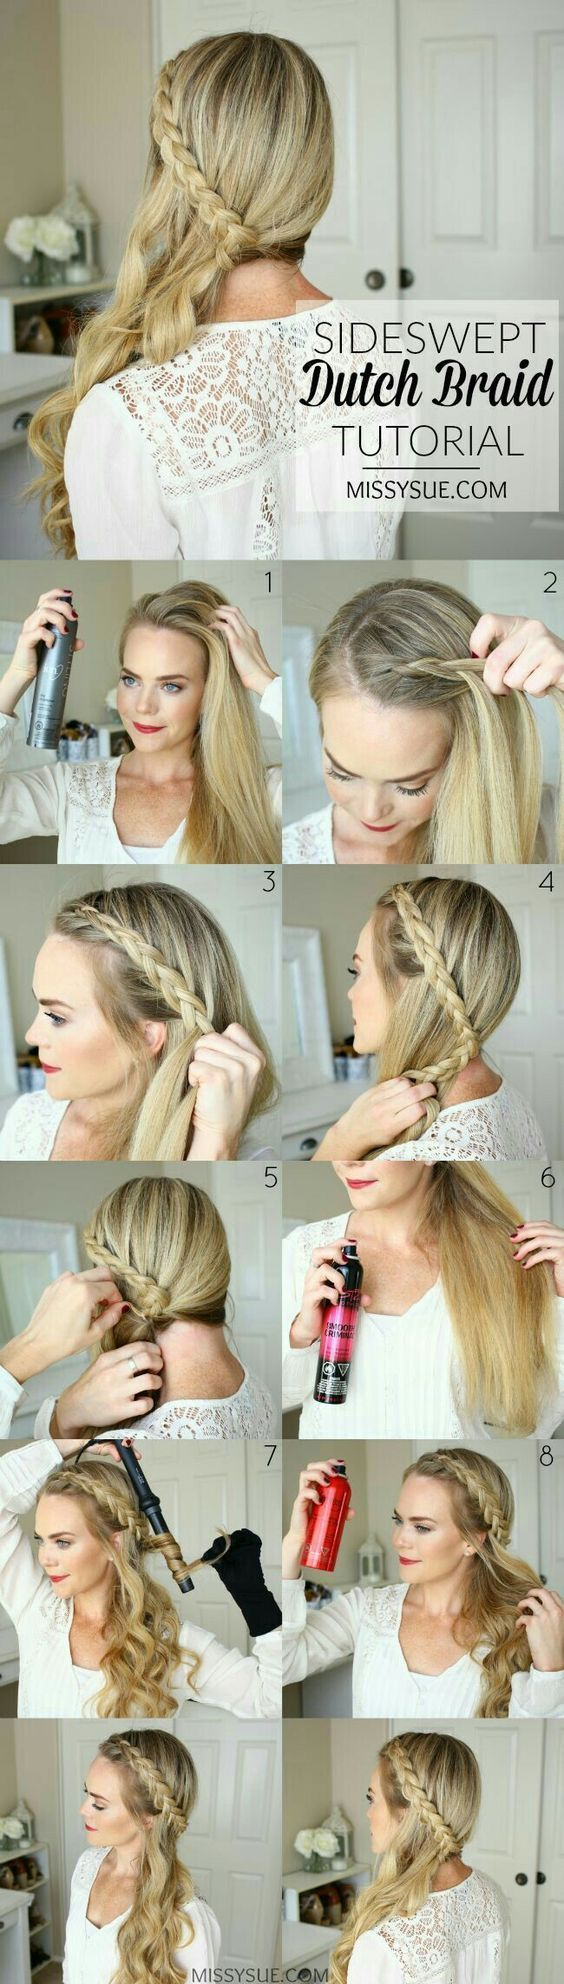 super cute and easy hair tutorials for the girl on the go